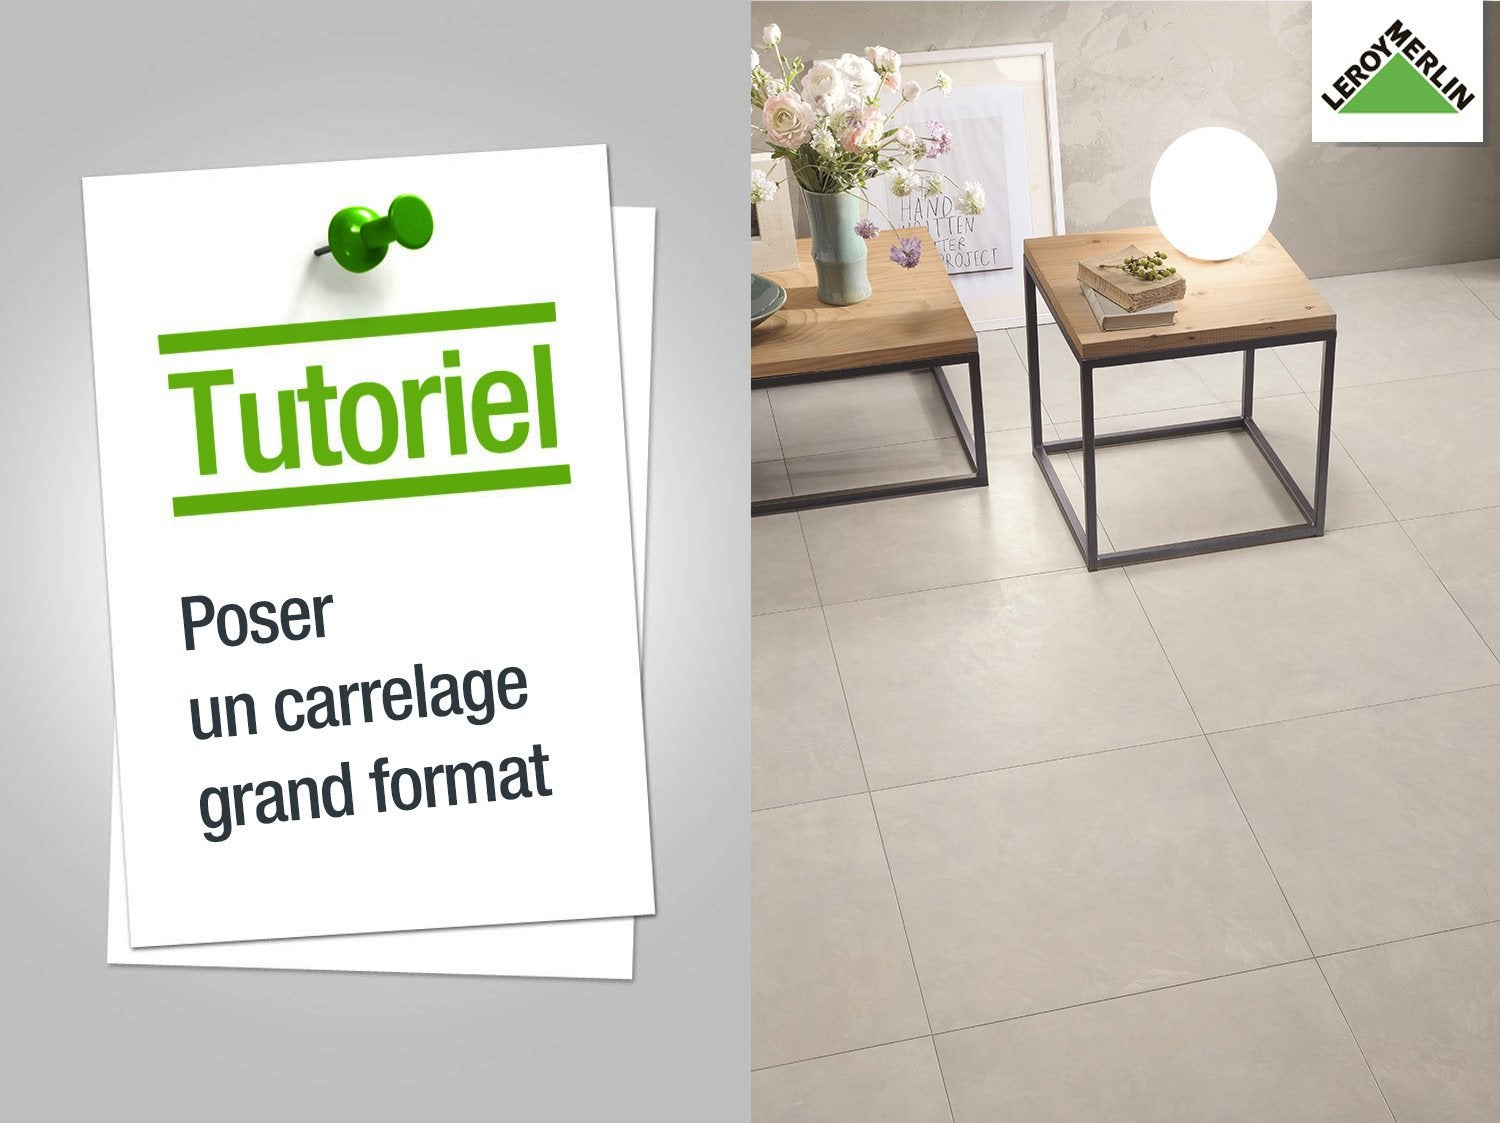 poser du carrelage grands carreaux